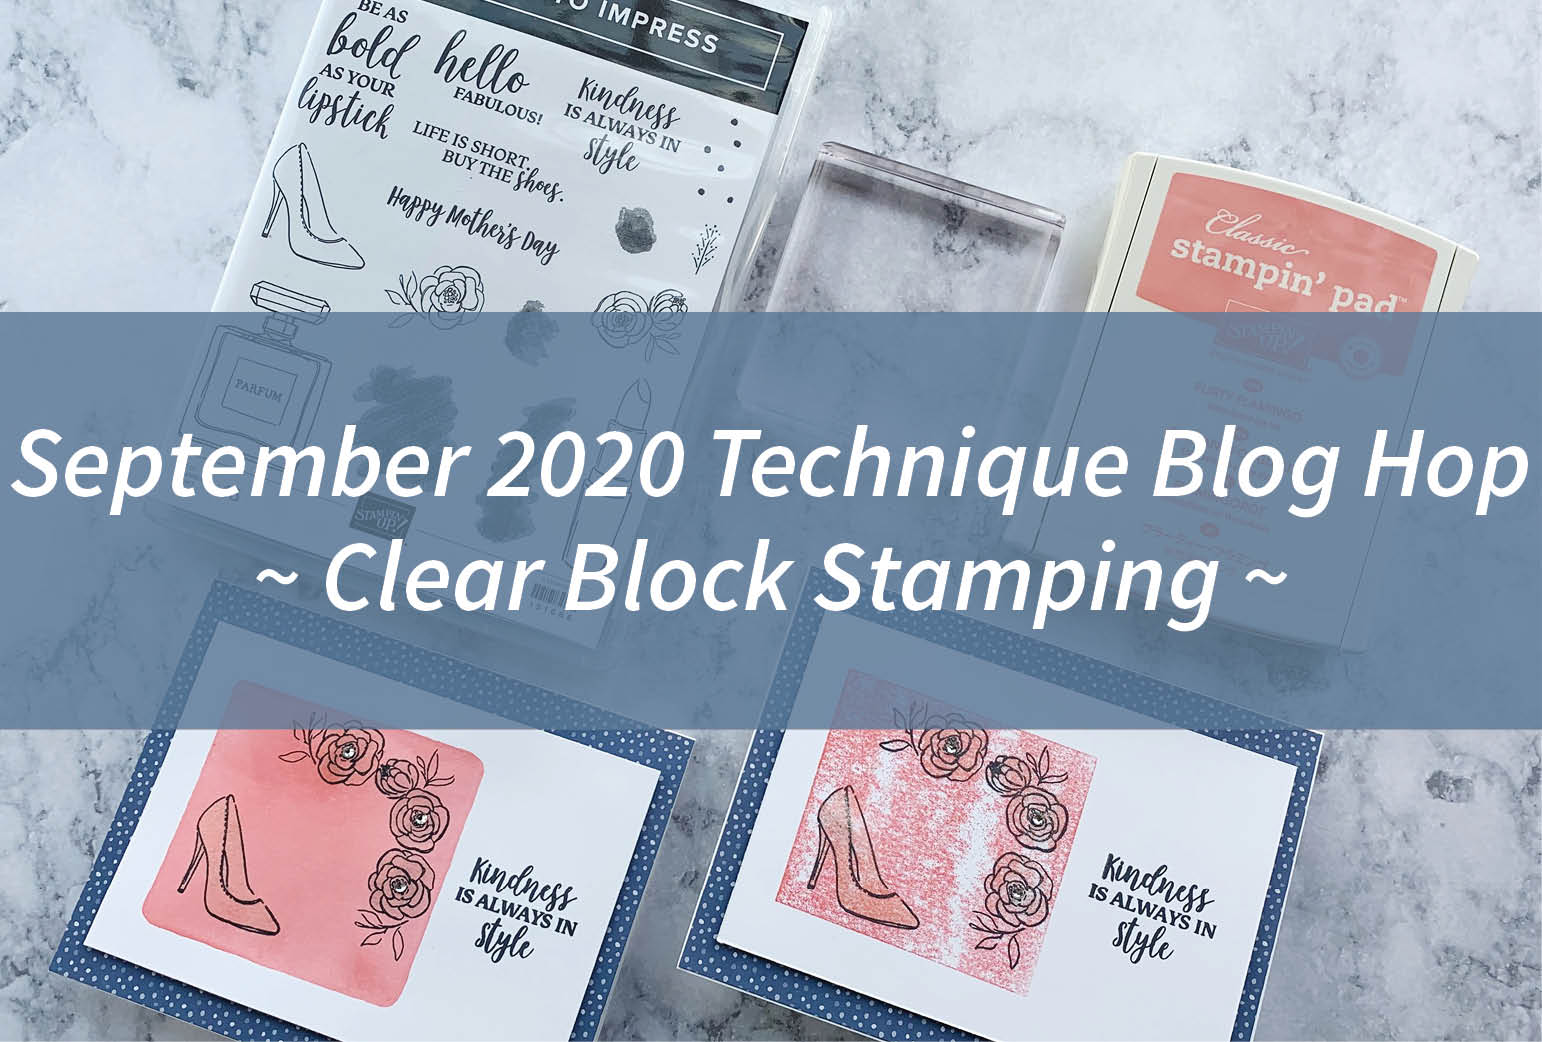 September 2020 Technique Blog Hop – Clear Block Stamping